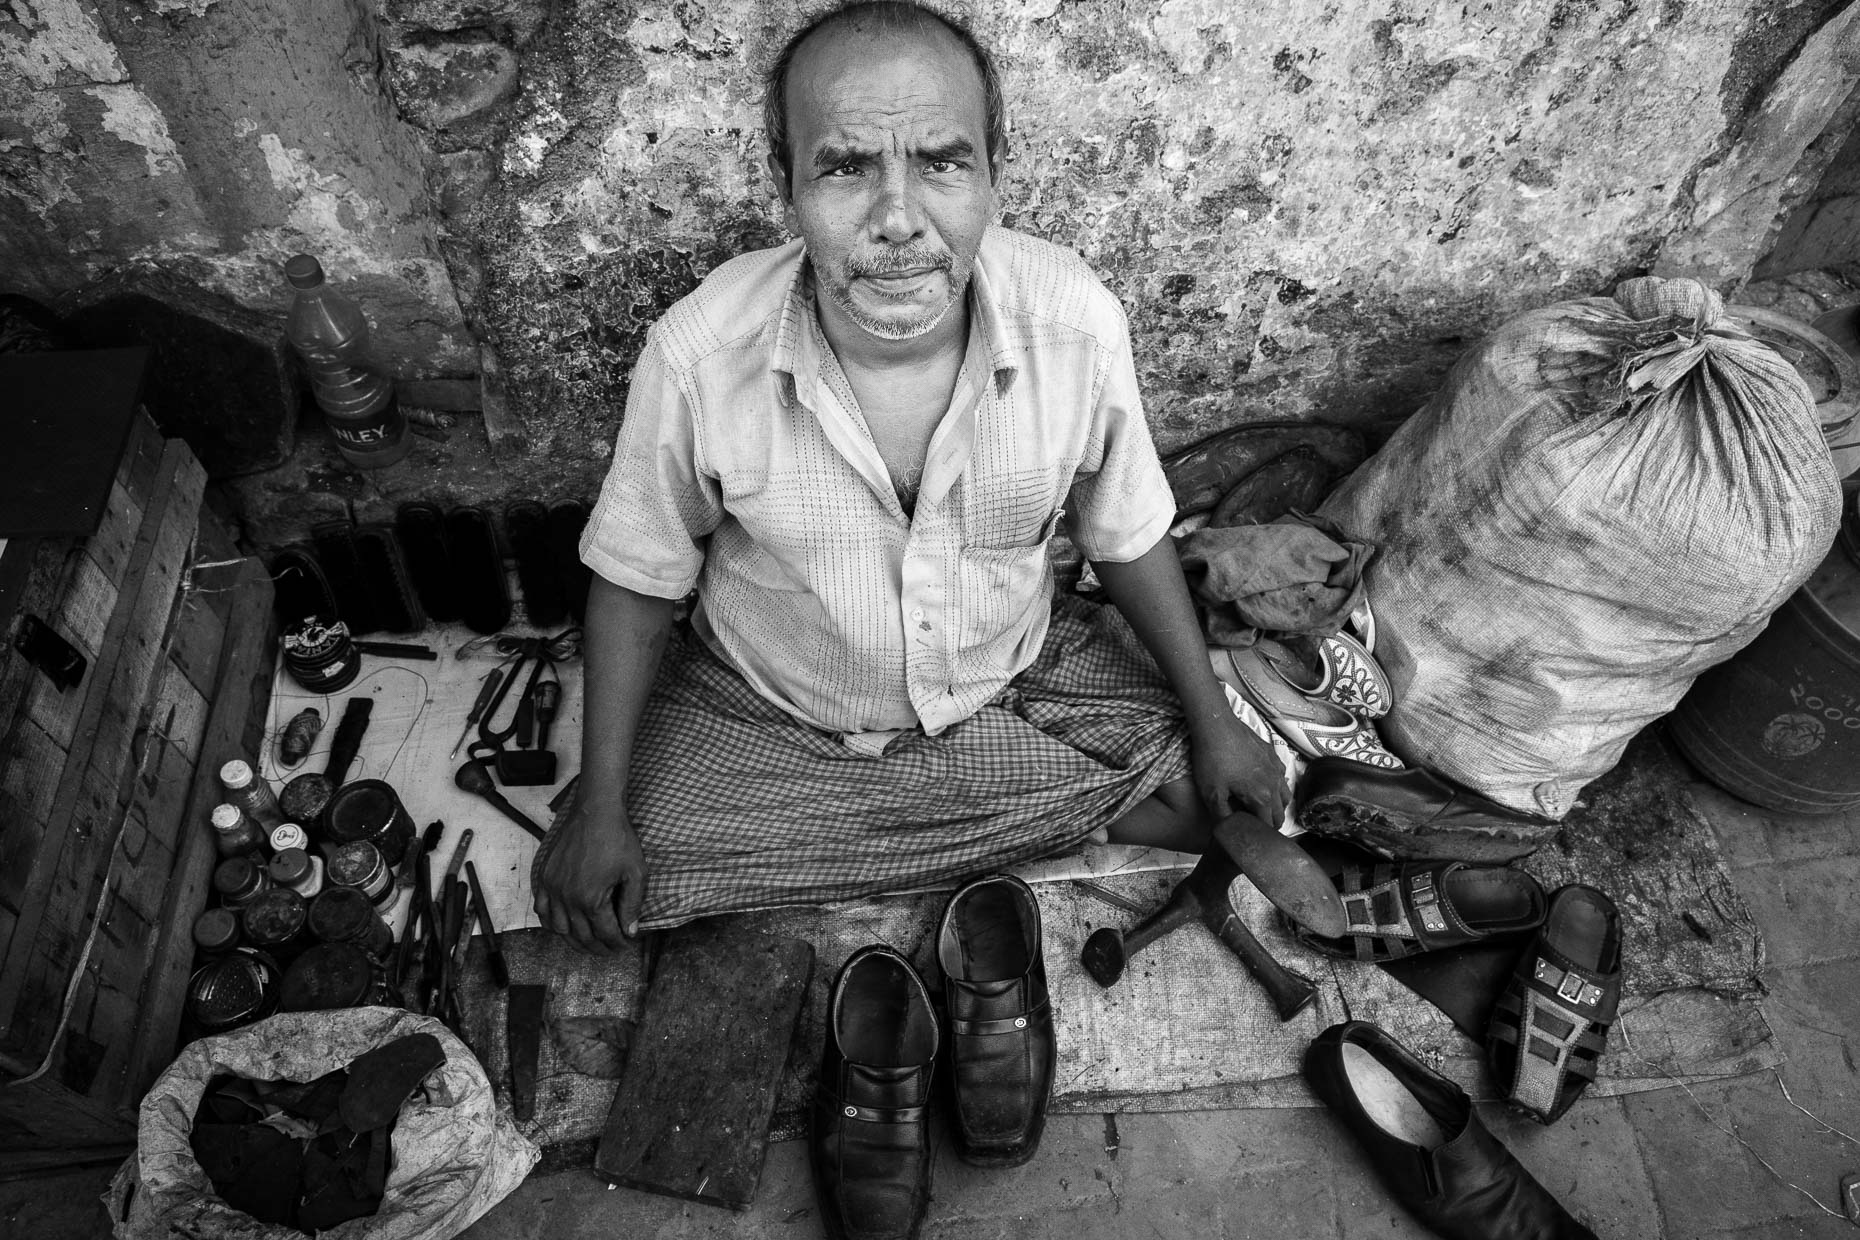 Shoe repair, Kolkata, India